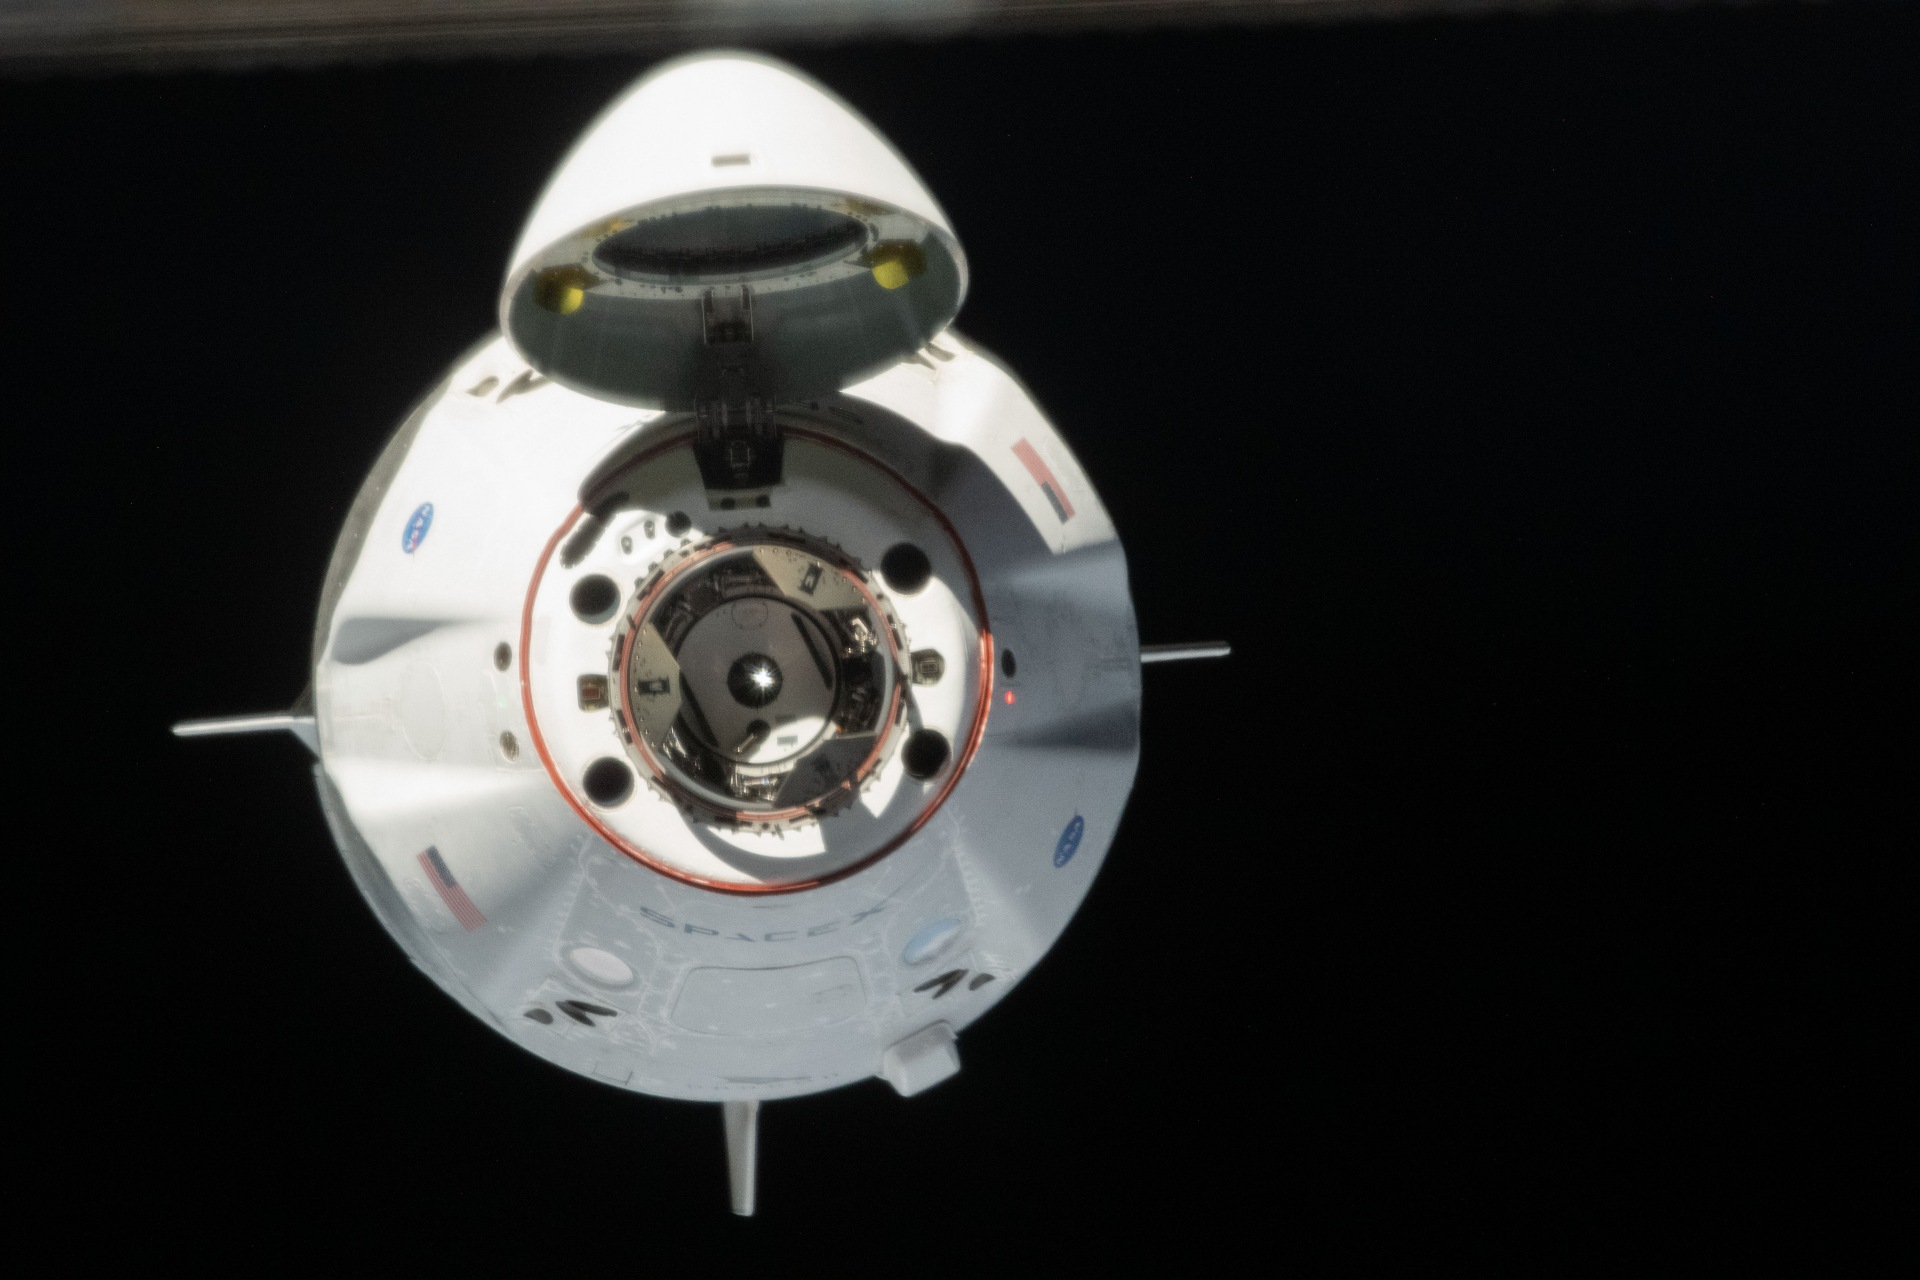 SpaceX Crew Dragon Demo-2